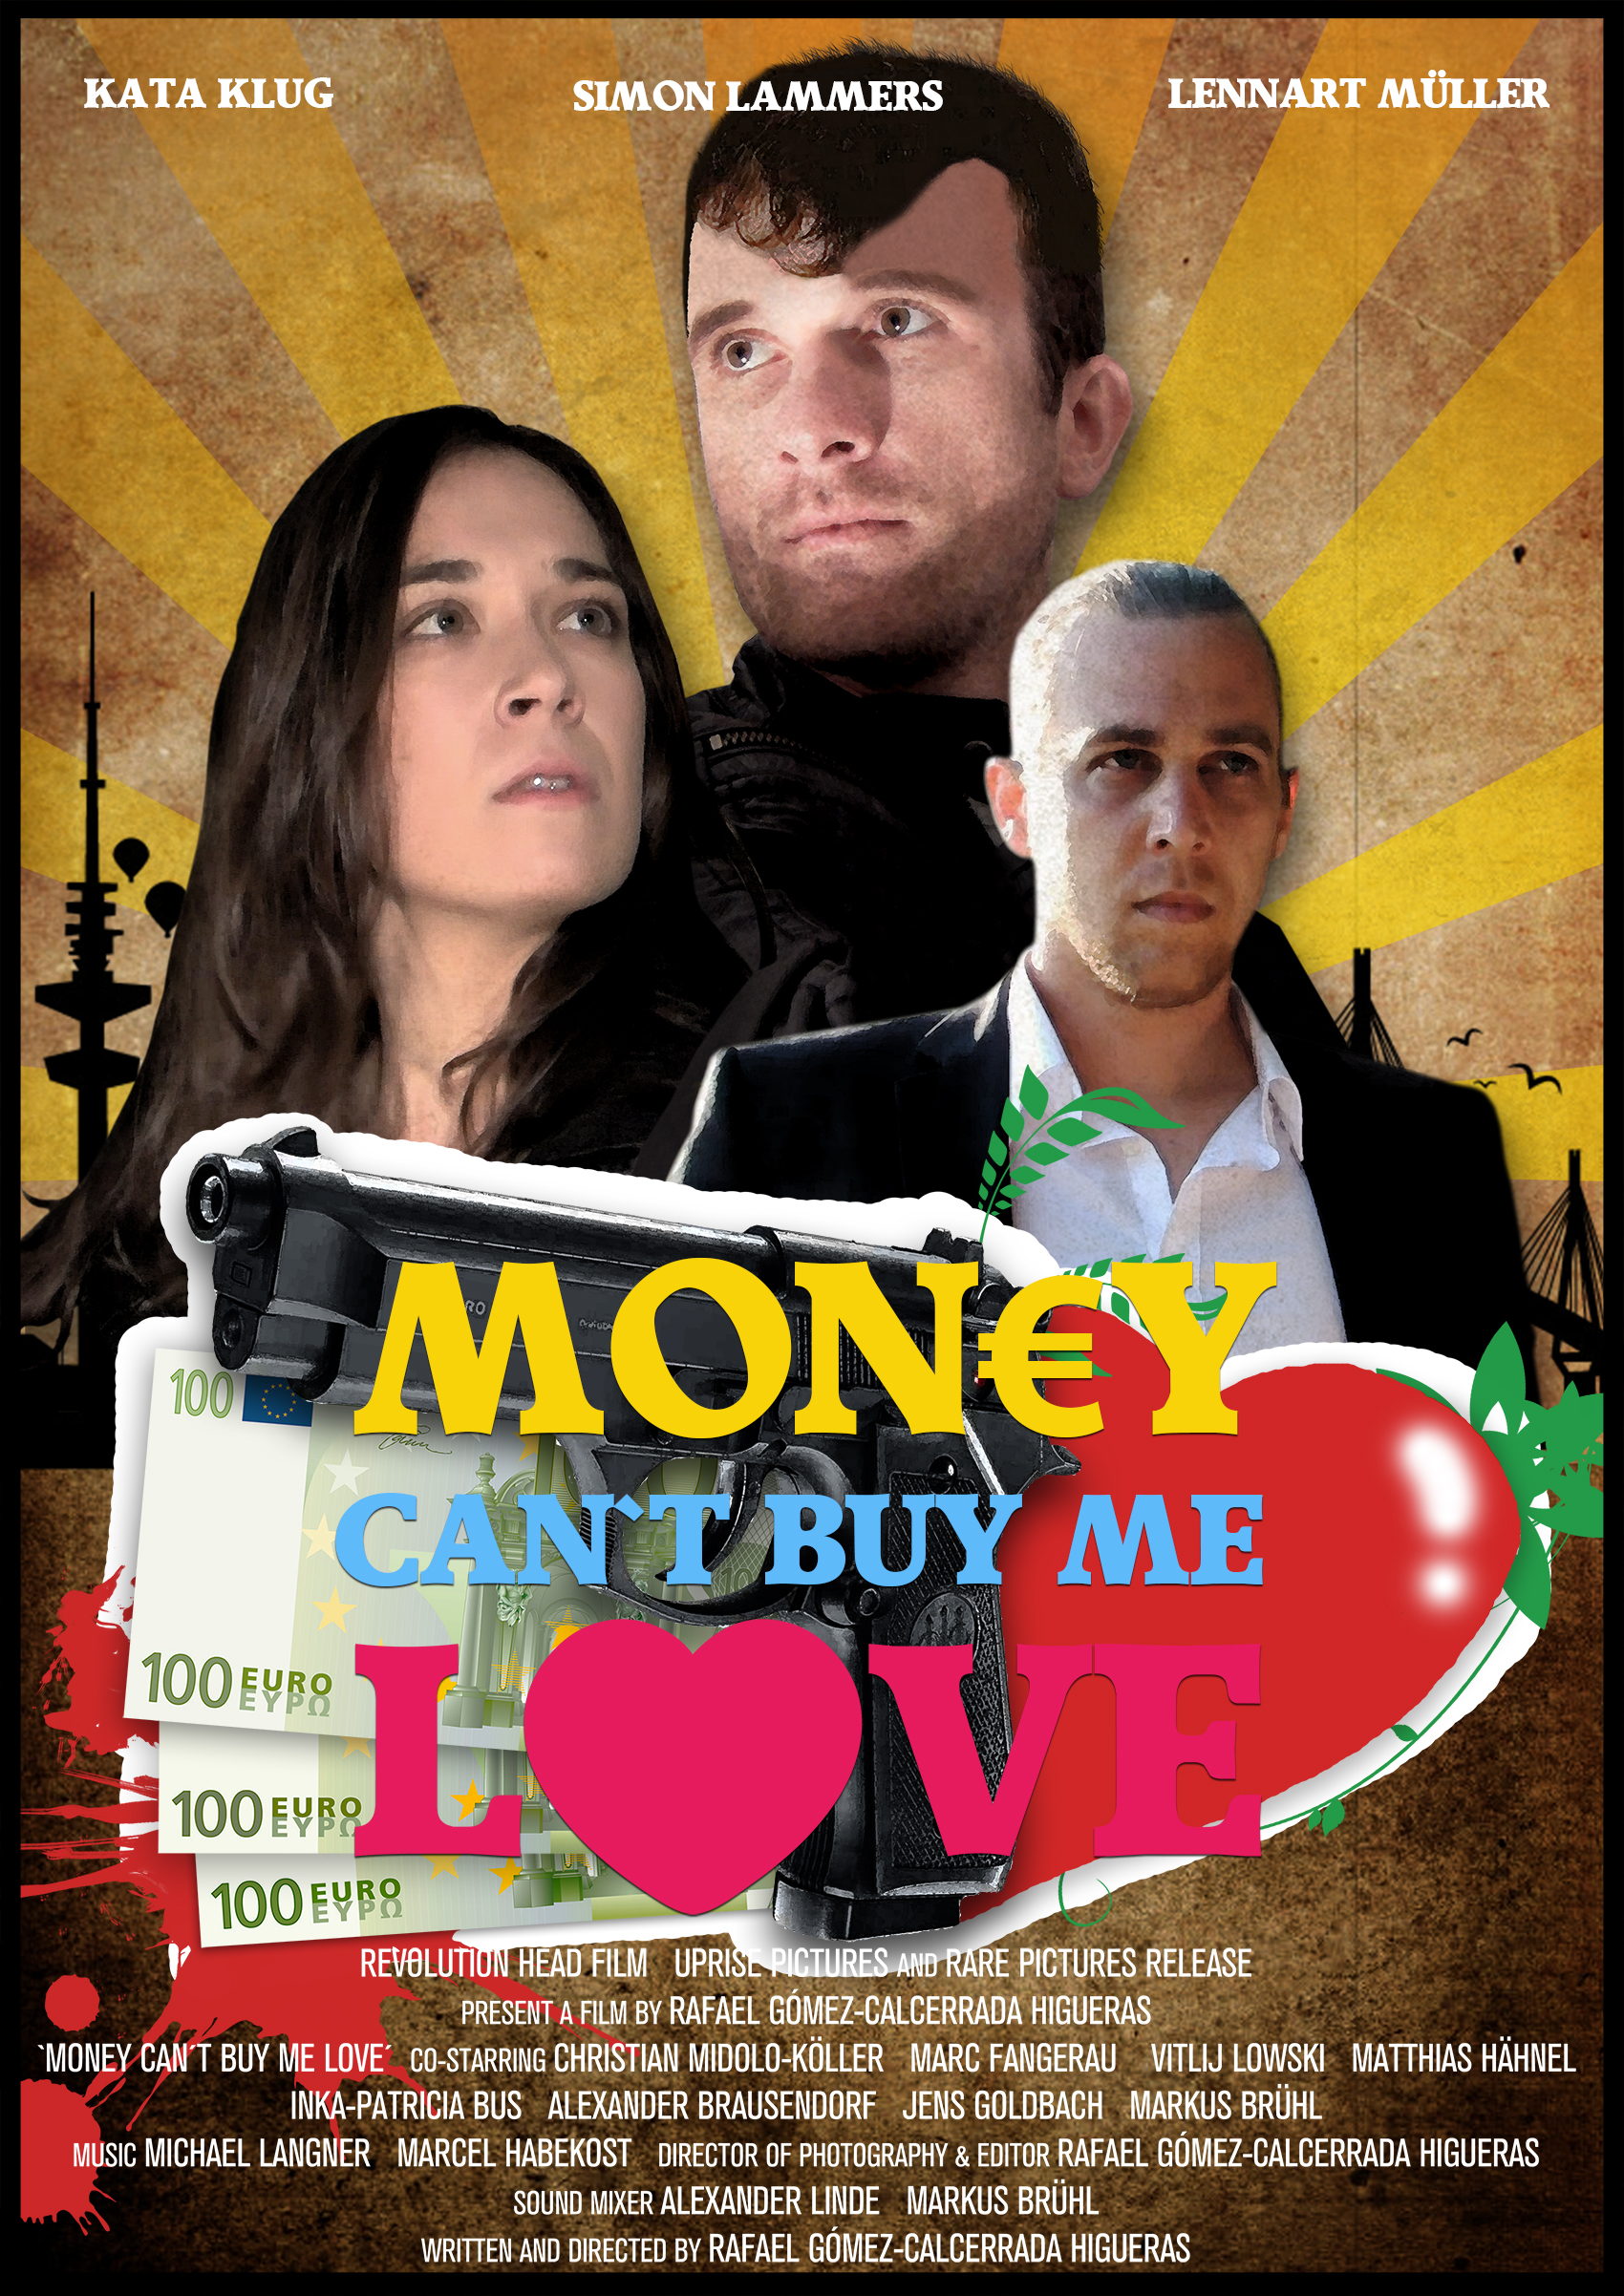 Lennart Müller, Kata Klug, and Simon Lammers in Money Can't Buy Me Love (2014)